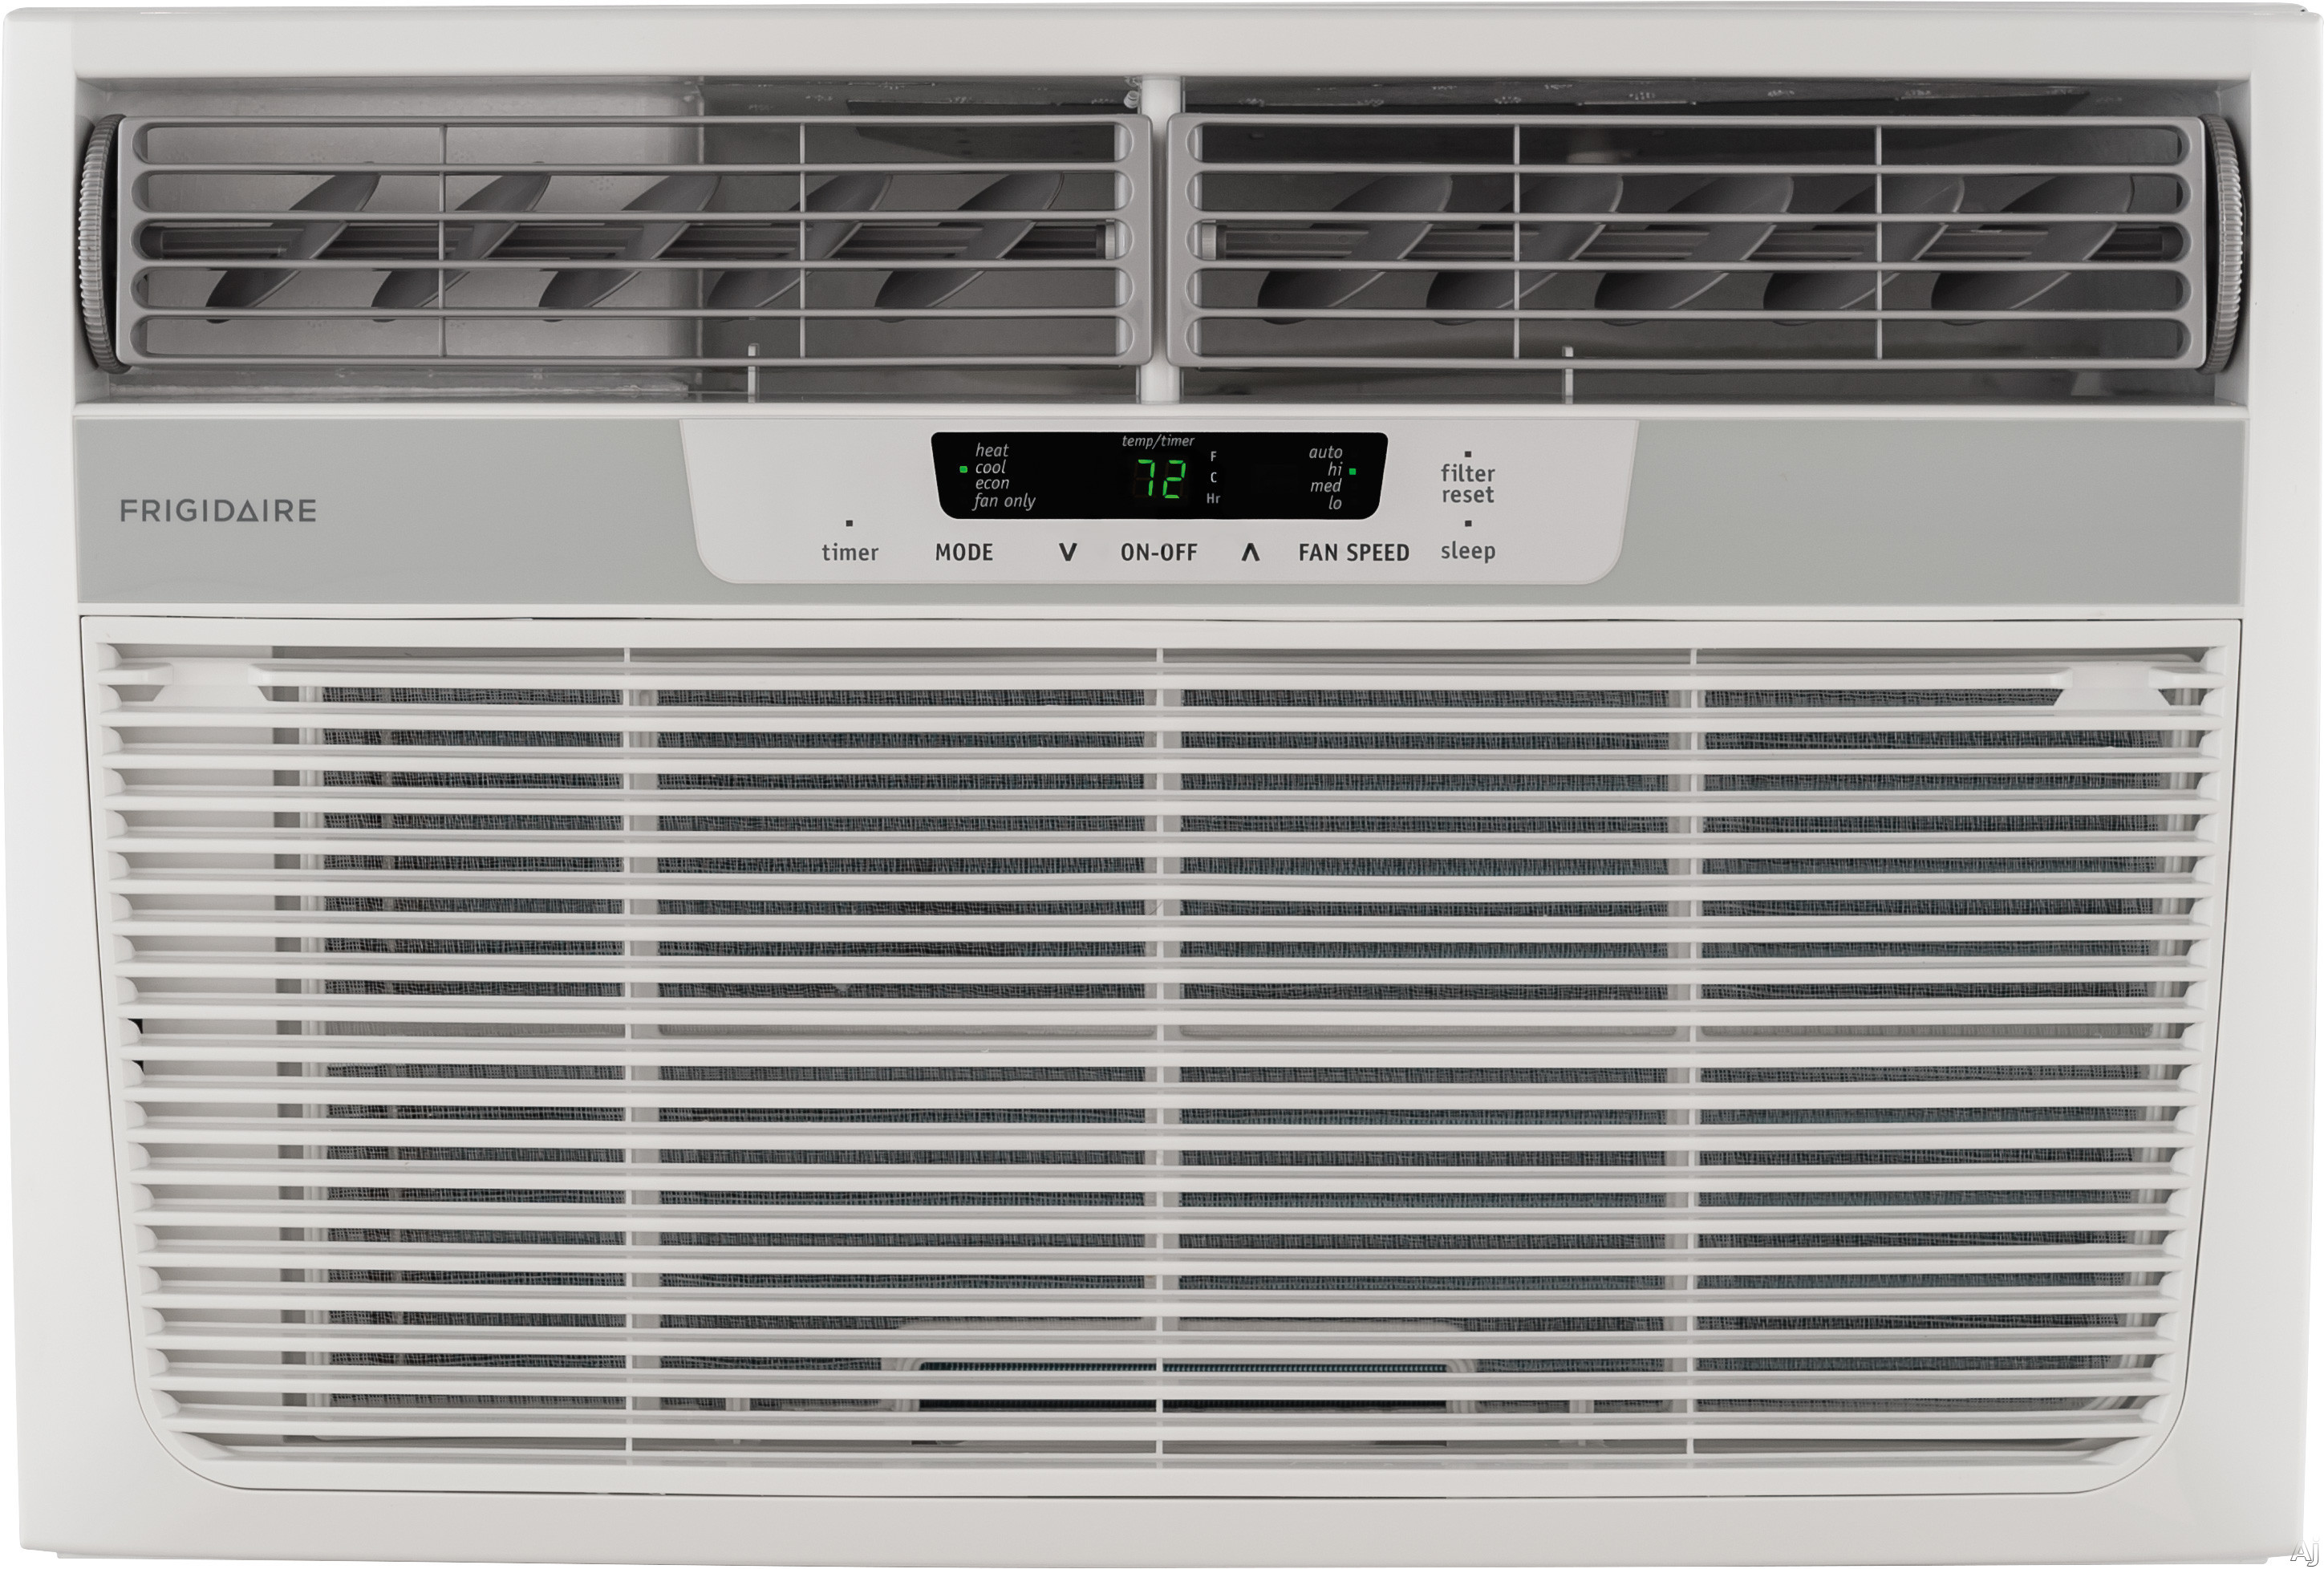 Frigidaire FFRH1222R2 12,000 BTU Room Air Conditioner with 11,000 BTU Electric Heat, 10.9 EER, R-410A Refrigerant, 2.0 Pts/Hr Dehumidification, Programmable Timer and 230/208 Volts FFRH1222R2